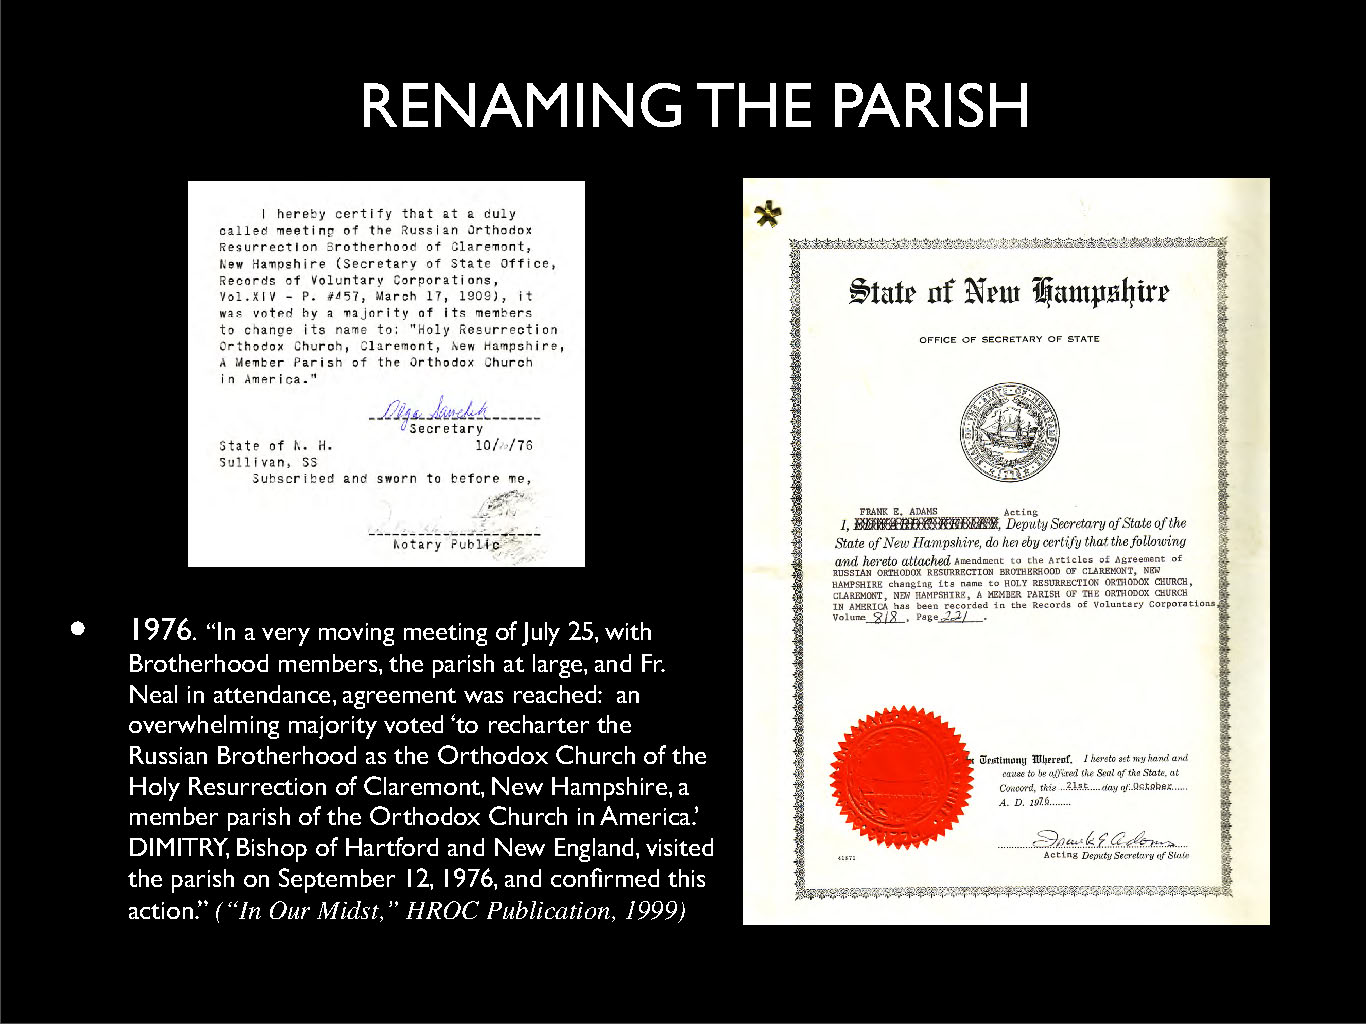 HROC-100-History-of-the-Parish1_Page_046